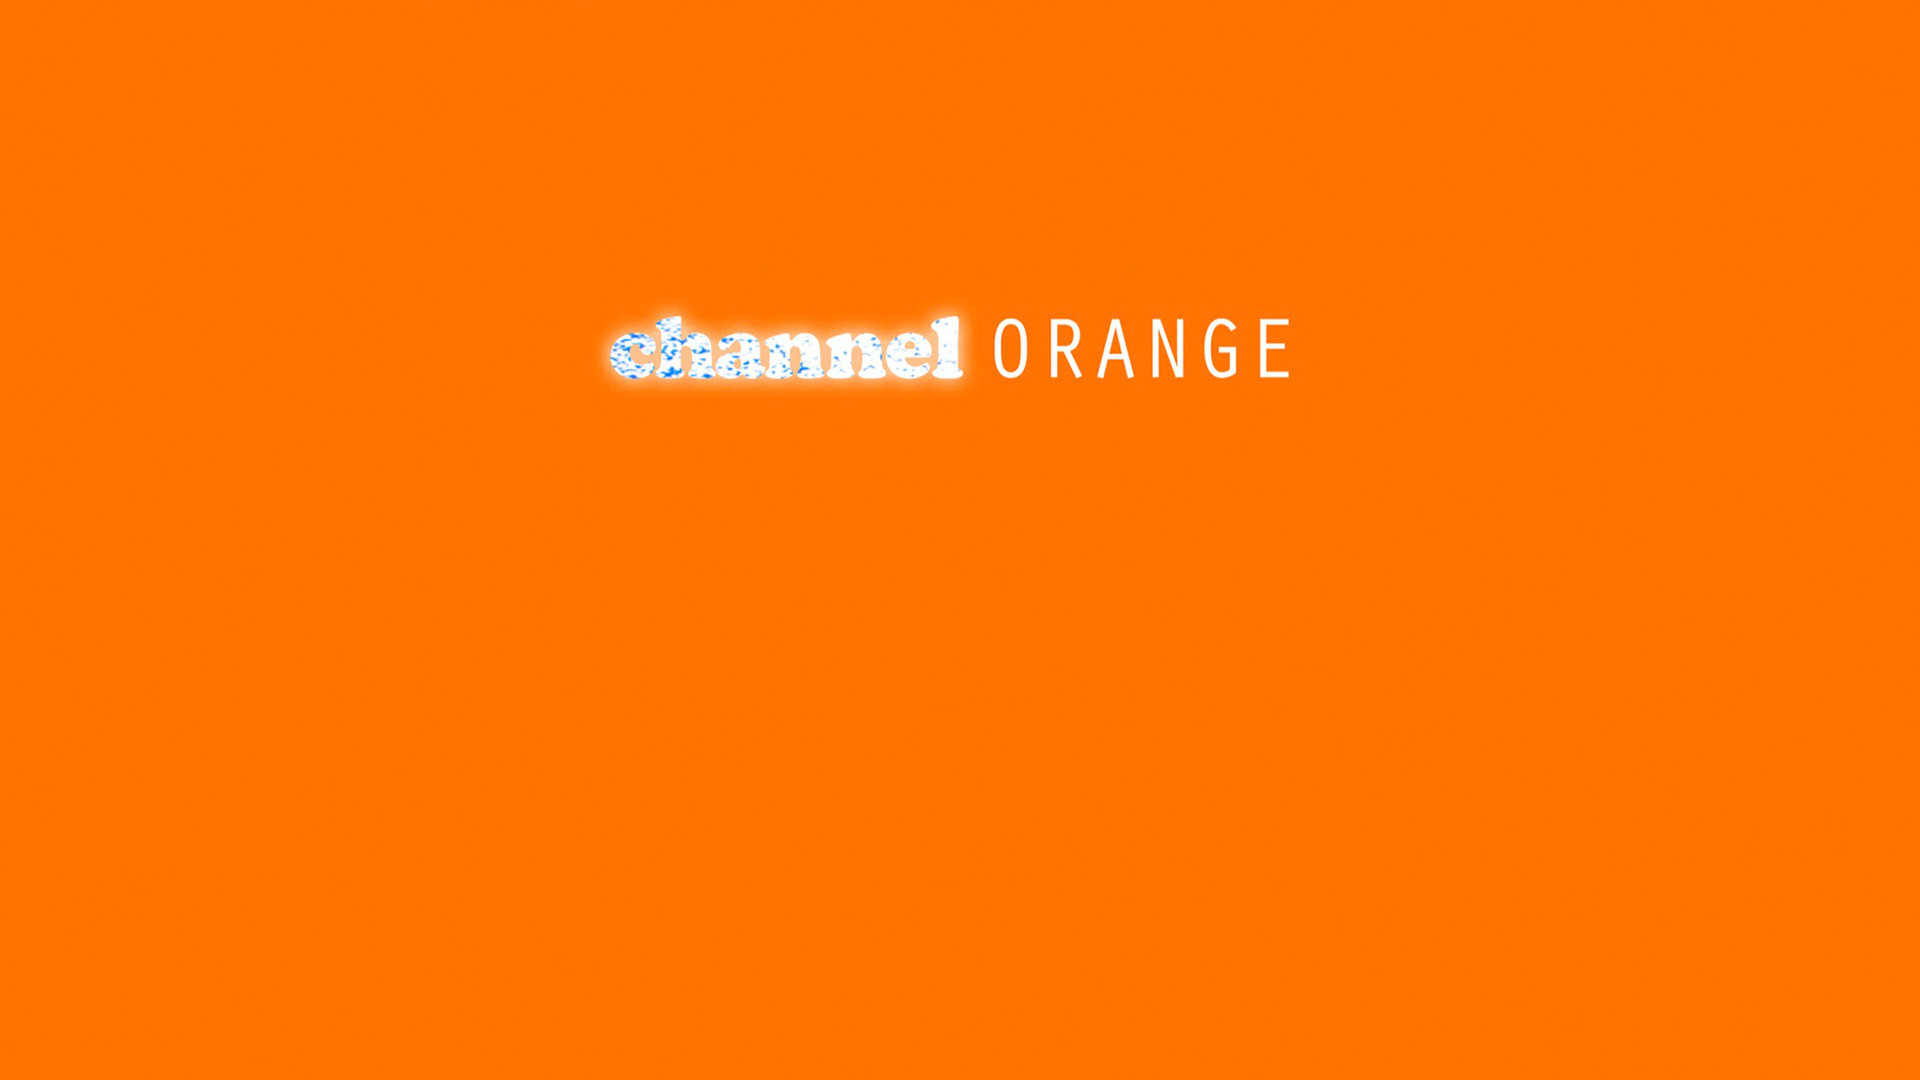 S3e2 Thinking About You By Frank Ocean Dissect Series 3